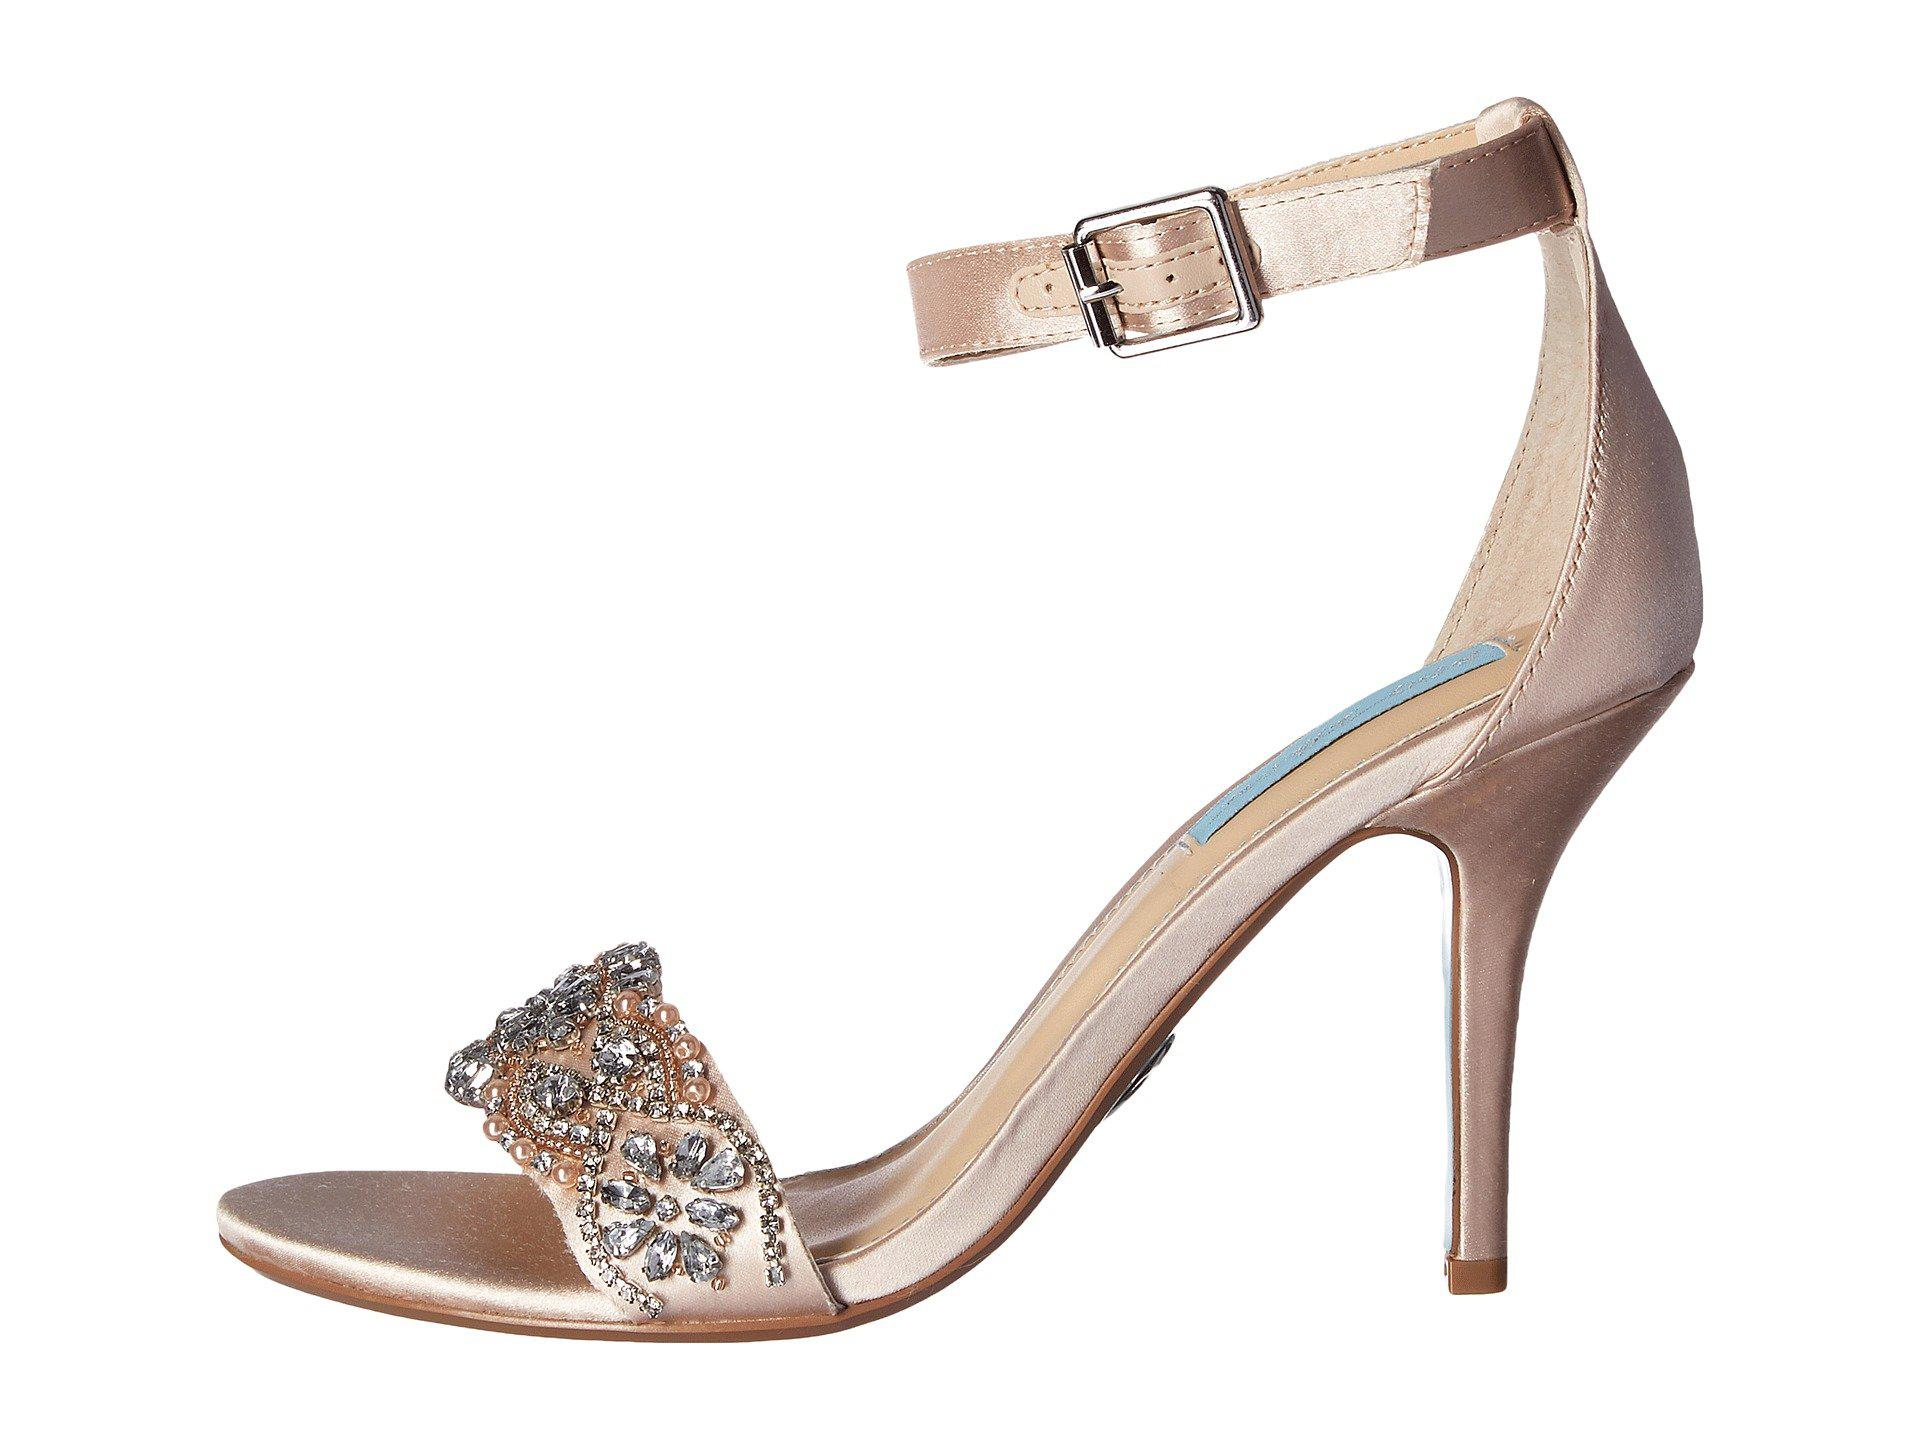 659a489a9a2 Lyst - Betsey Johnson Gina (champagne) Women s 1-2 Inch Heel Shoes